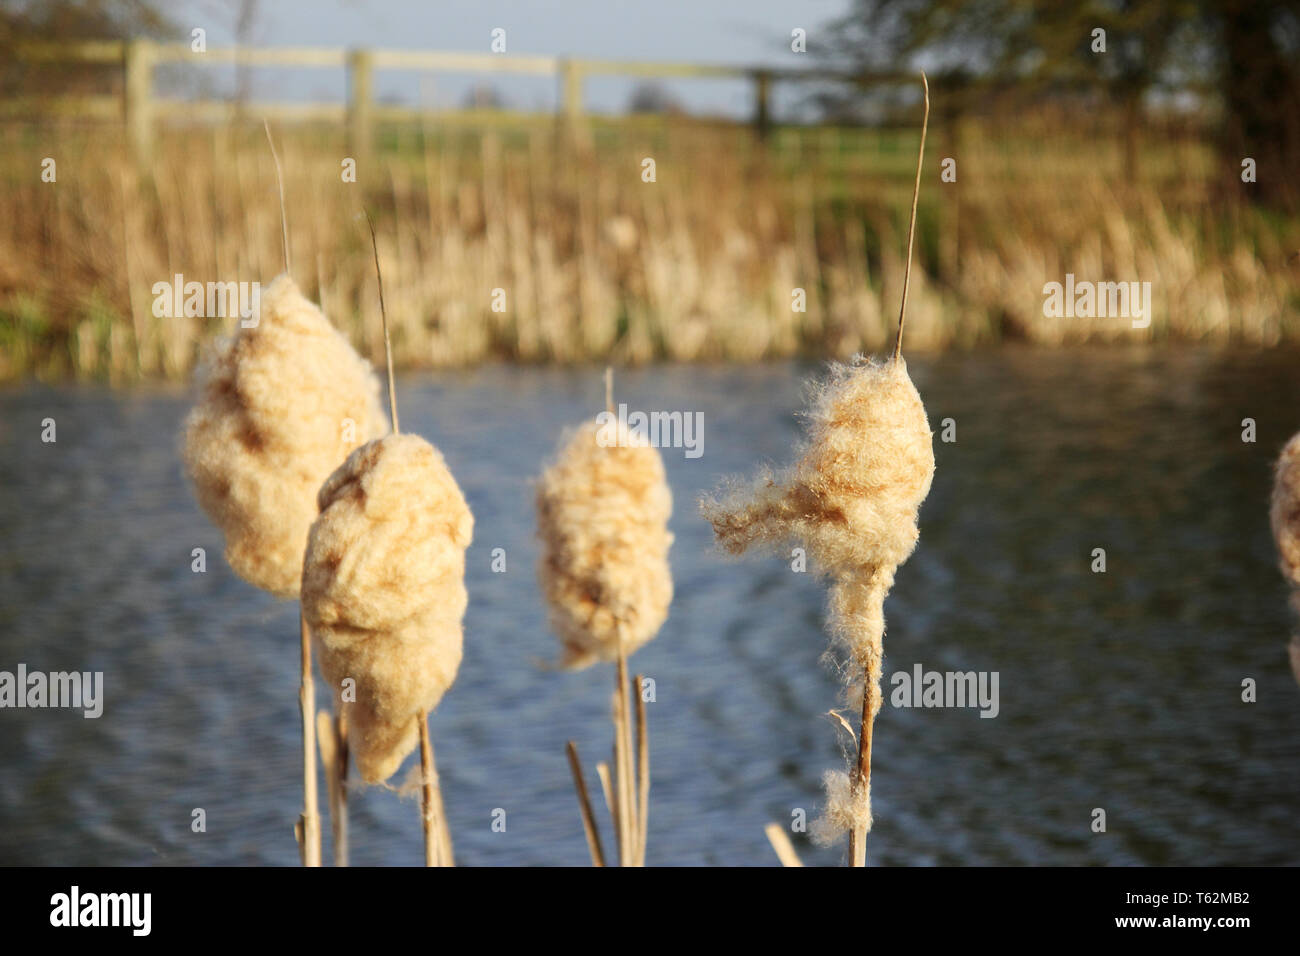 Fluffy Bulrushes seen in front of lake. - Stock Image